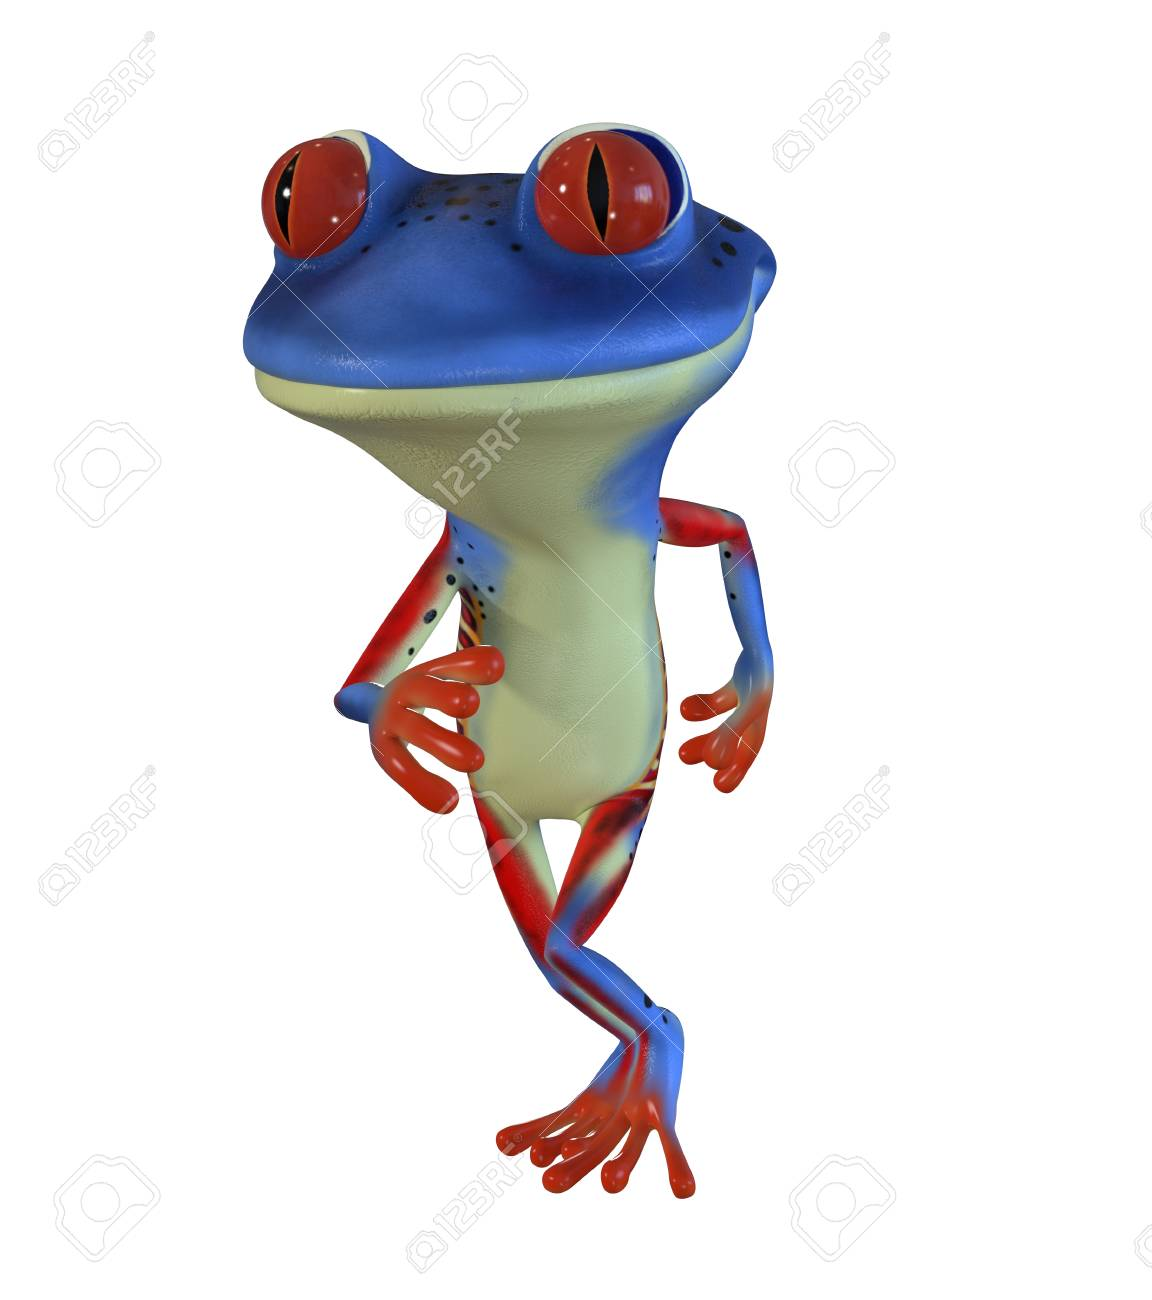 3d Illustration Of A Blue Cartoon Tree Frog Stock Photo Picture And Royalty Free Image Image 83381289 Tattoo design of a cartoon tree frog for a friend. 123rf com